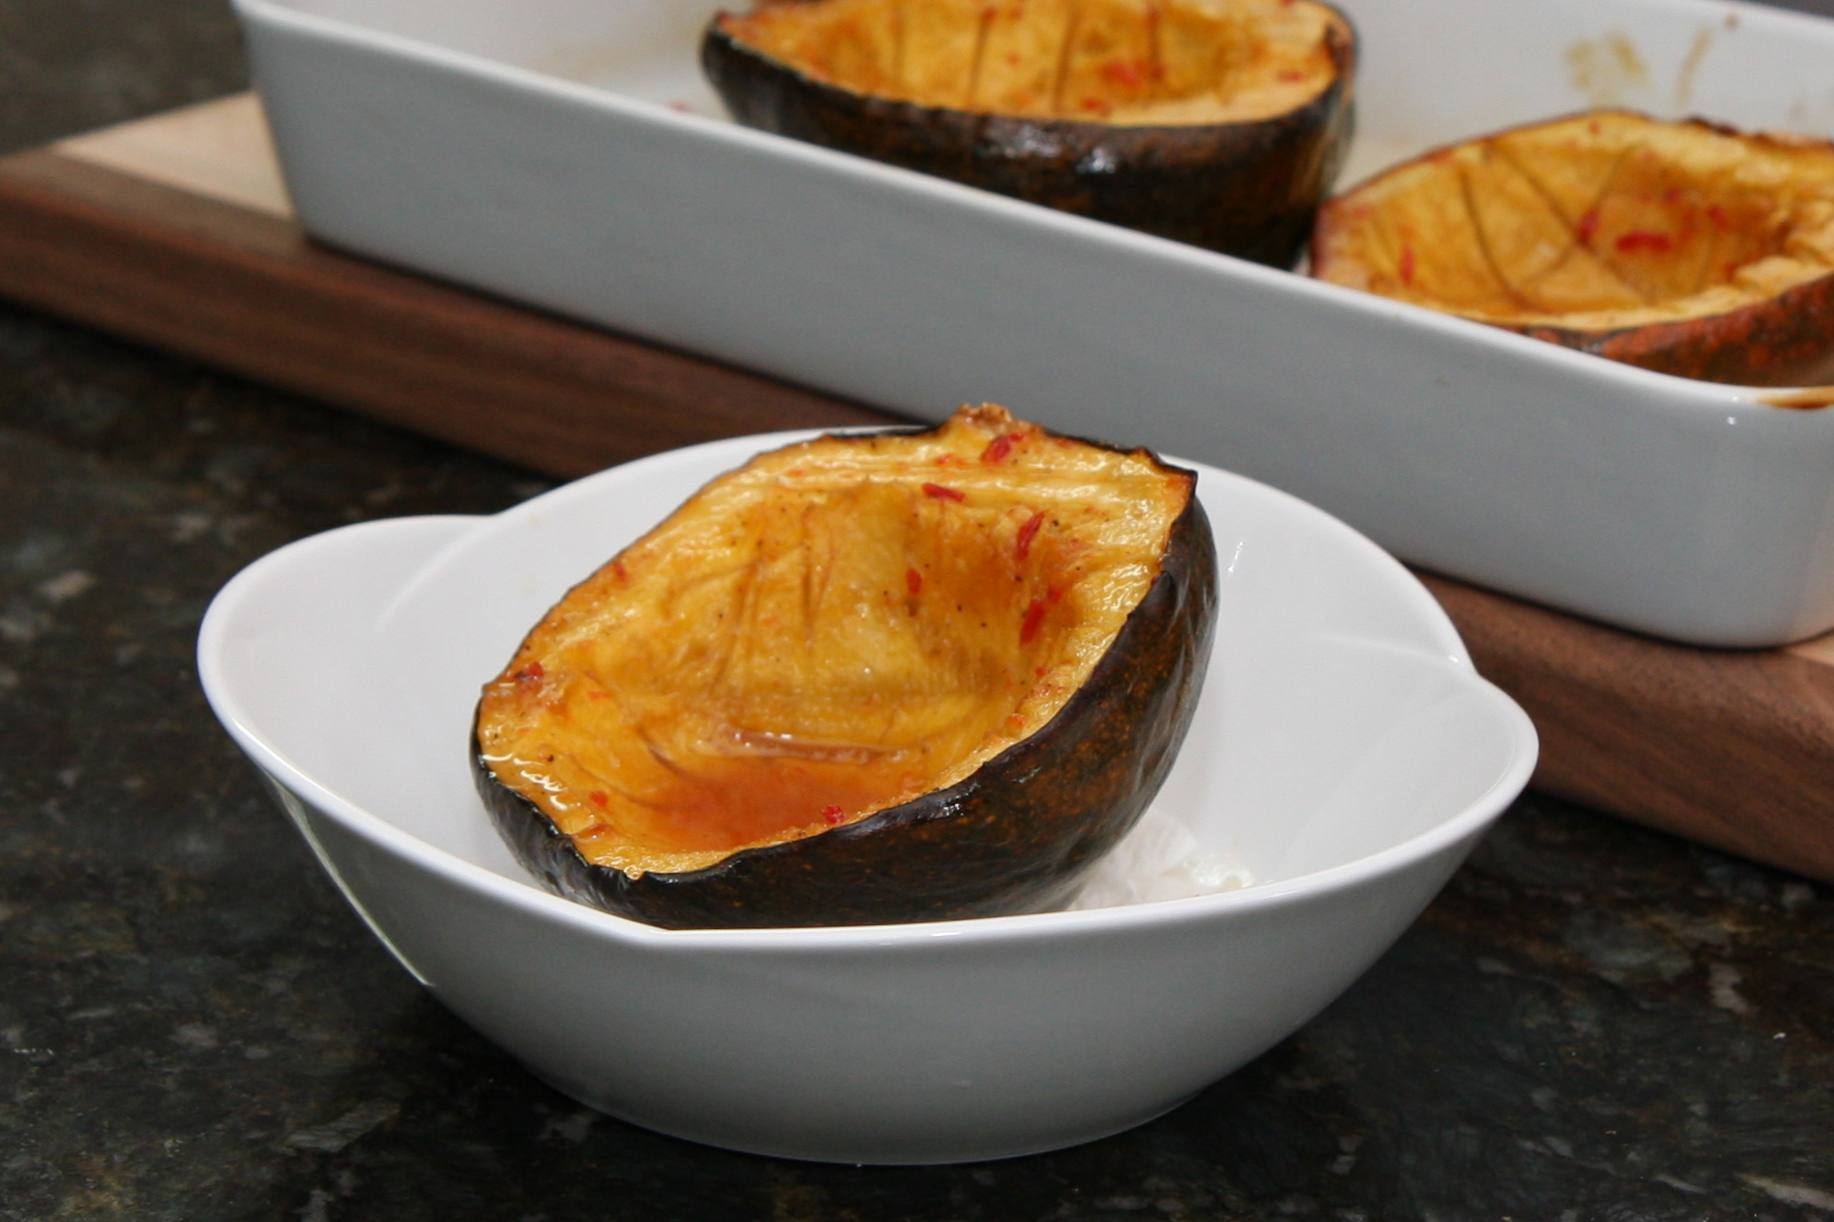 A baked glazed acorn squash in a serving bowl